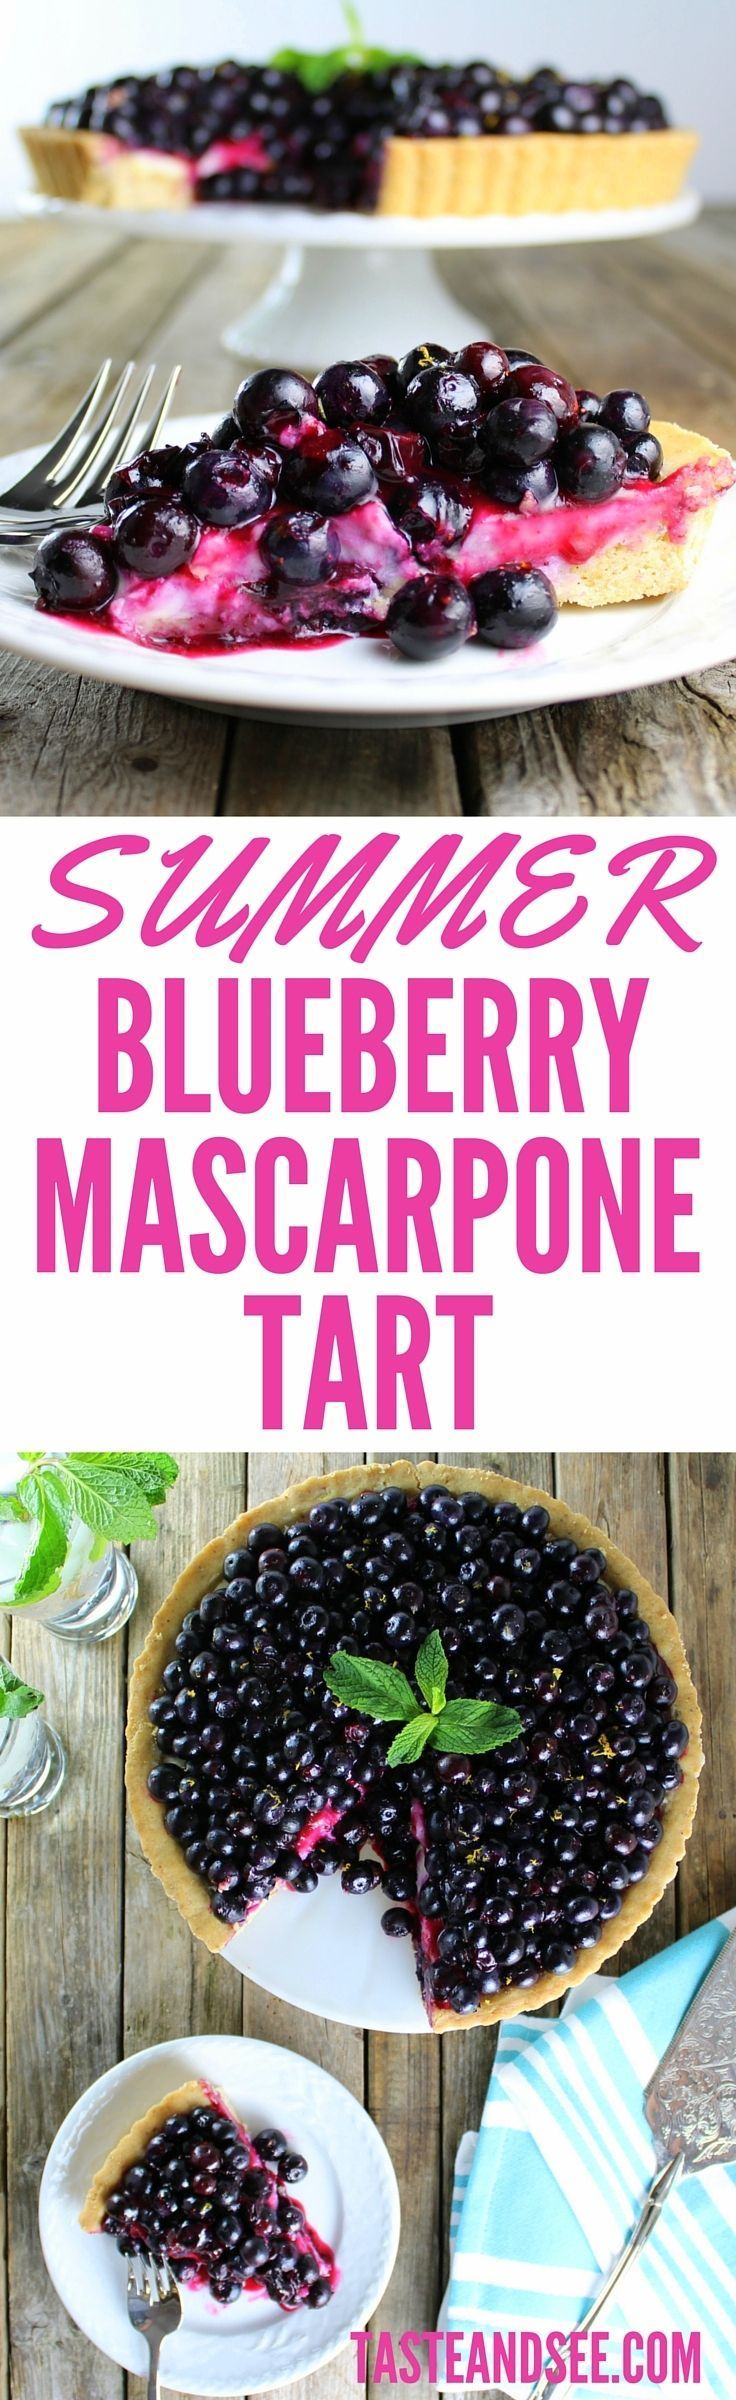 Blueberry specialties on Pinterest | Blueberries, Blueberry cheesecake ...